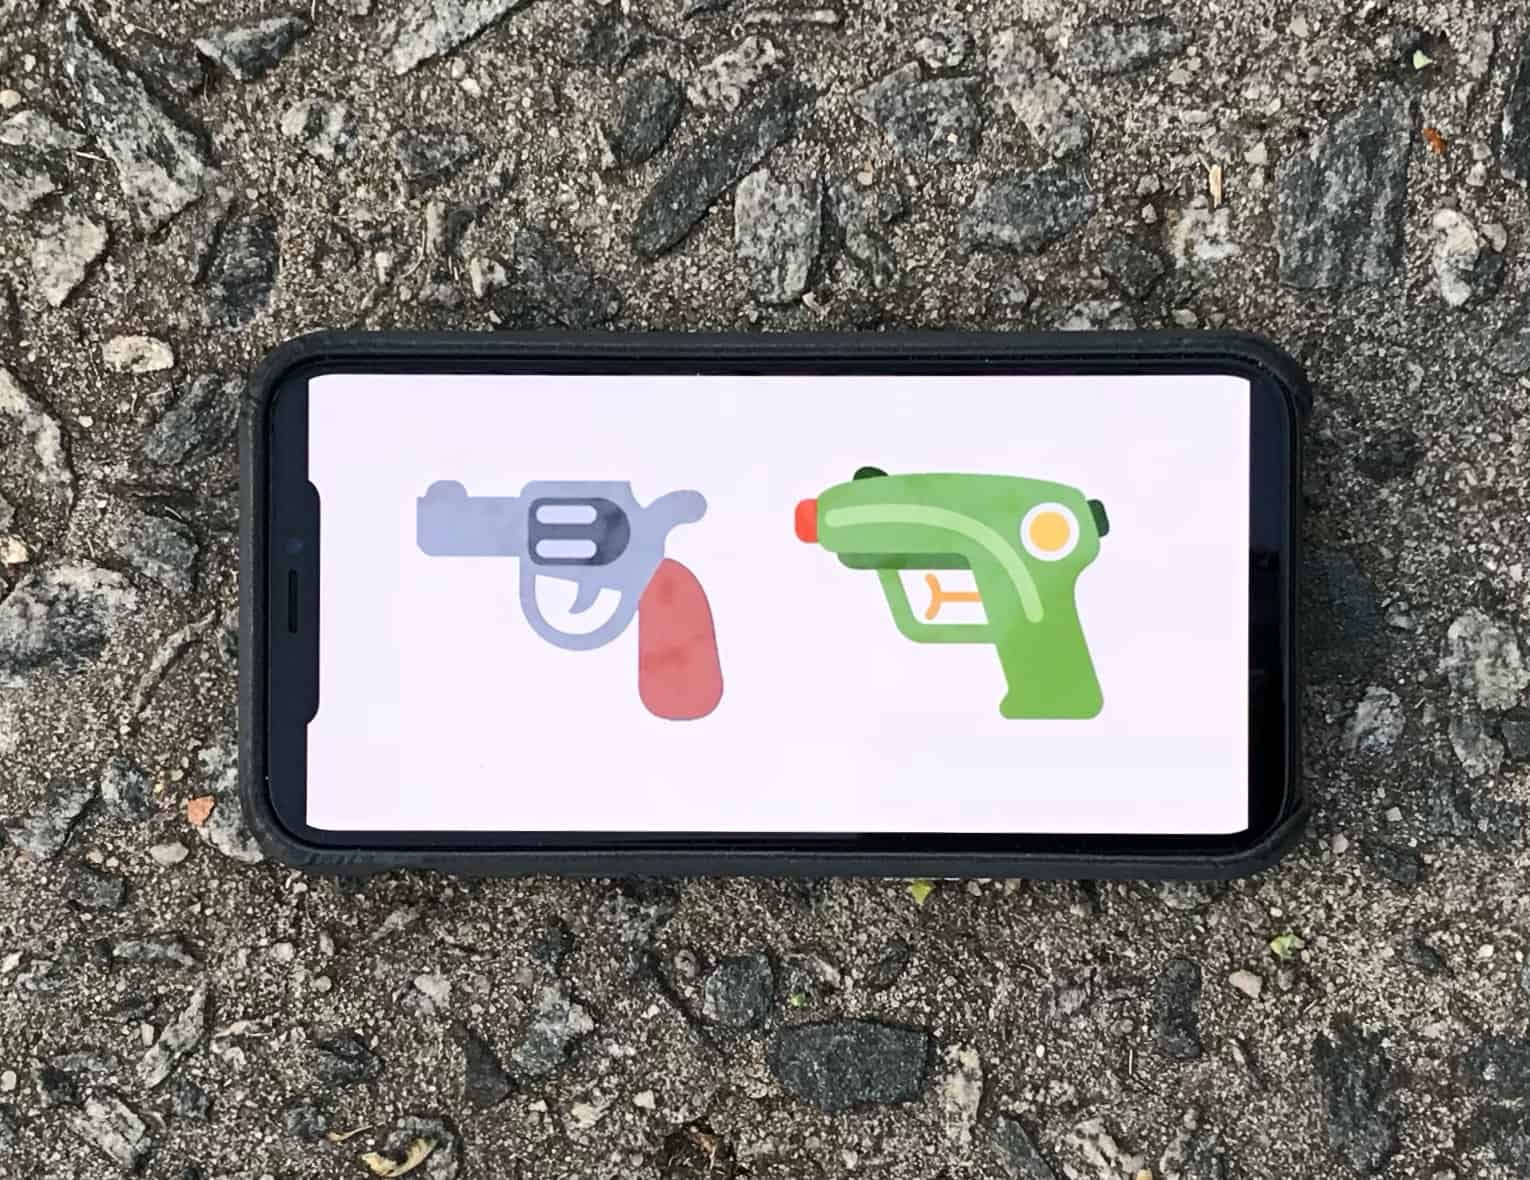 Pistol emoji going away